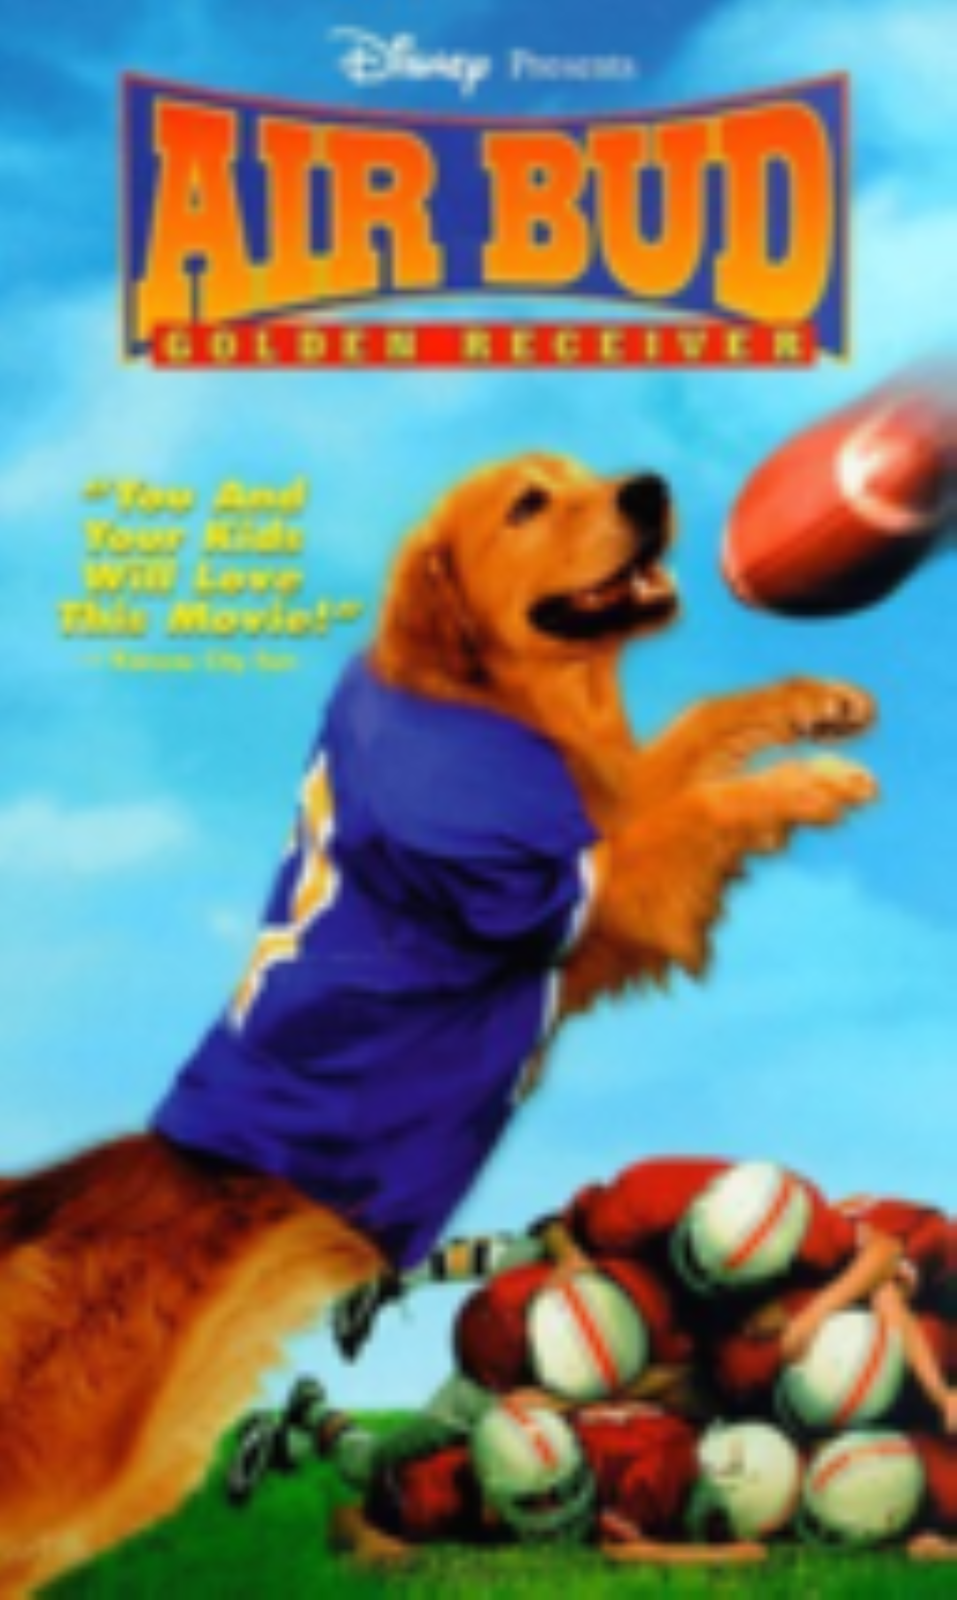 Air Bud - Golden Receiver Vhs